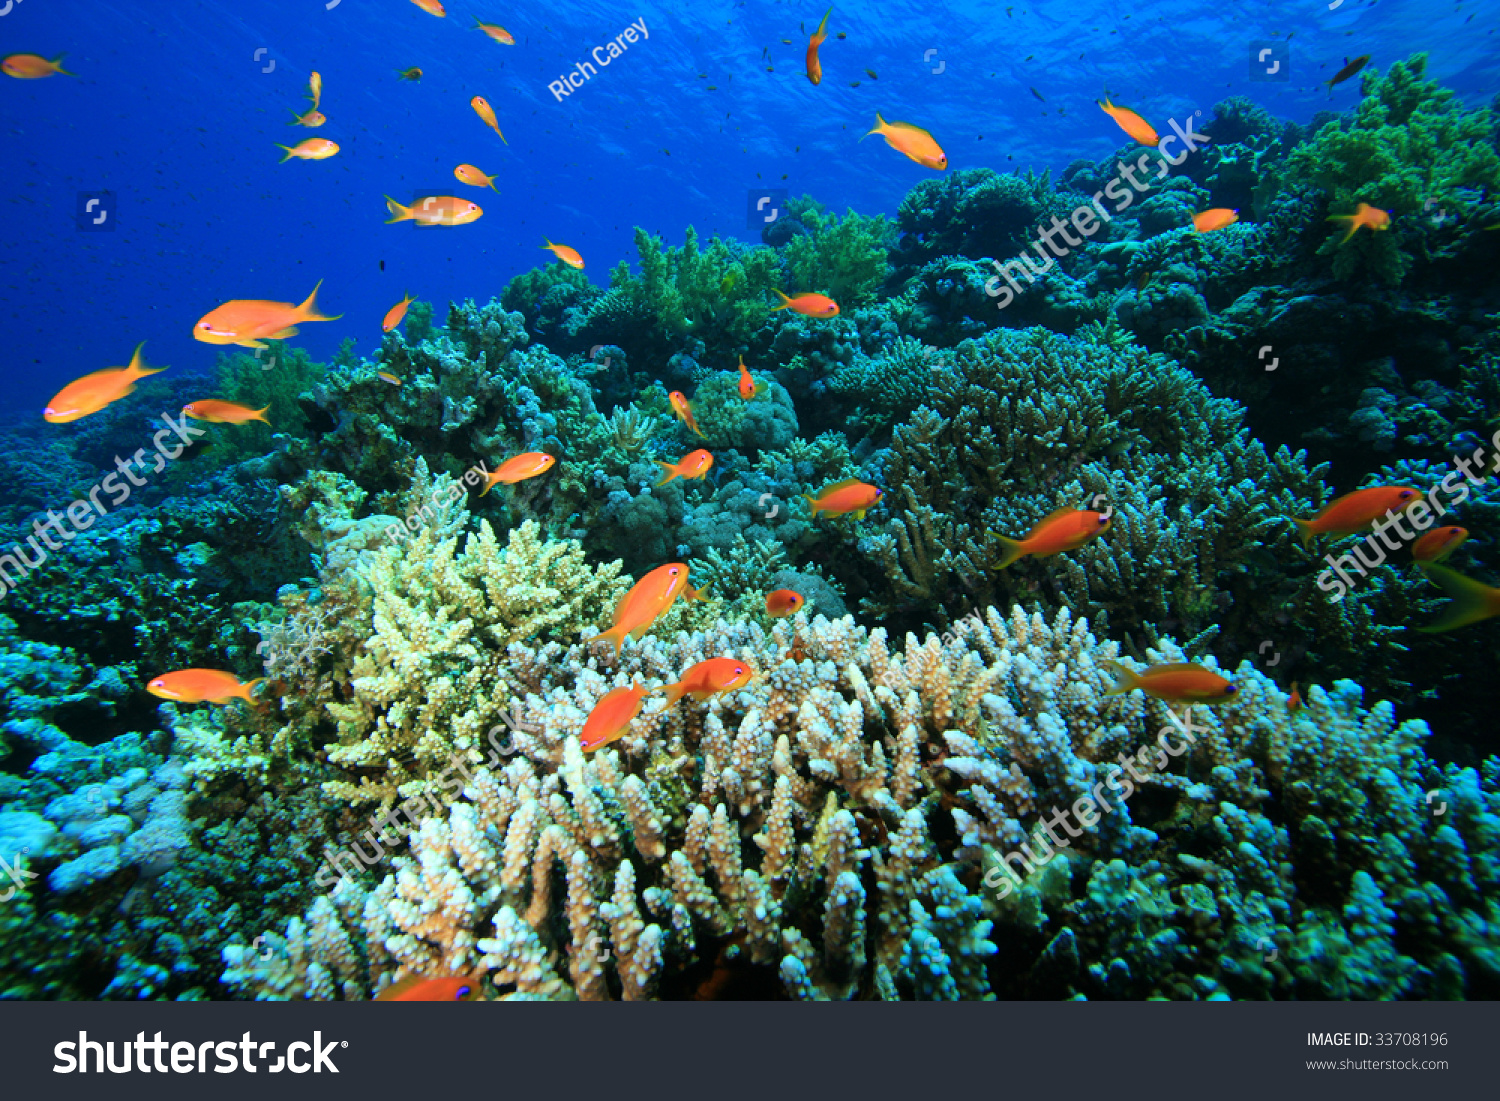 beautiful colorful coral reefs - photo #8